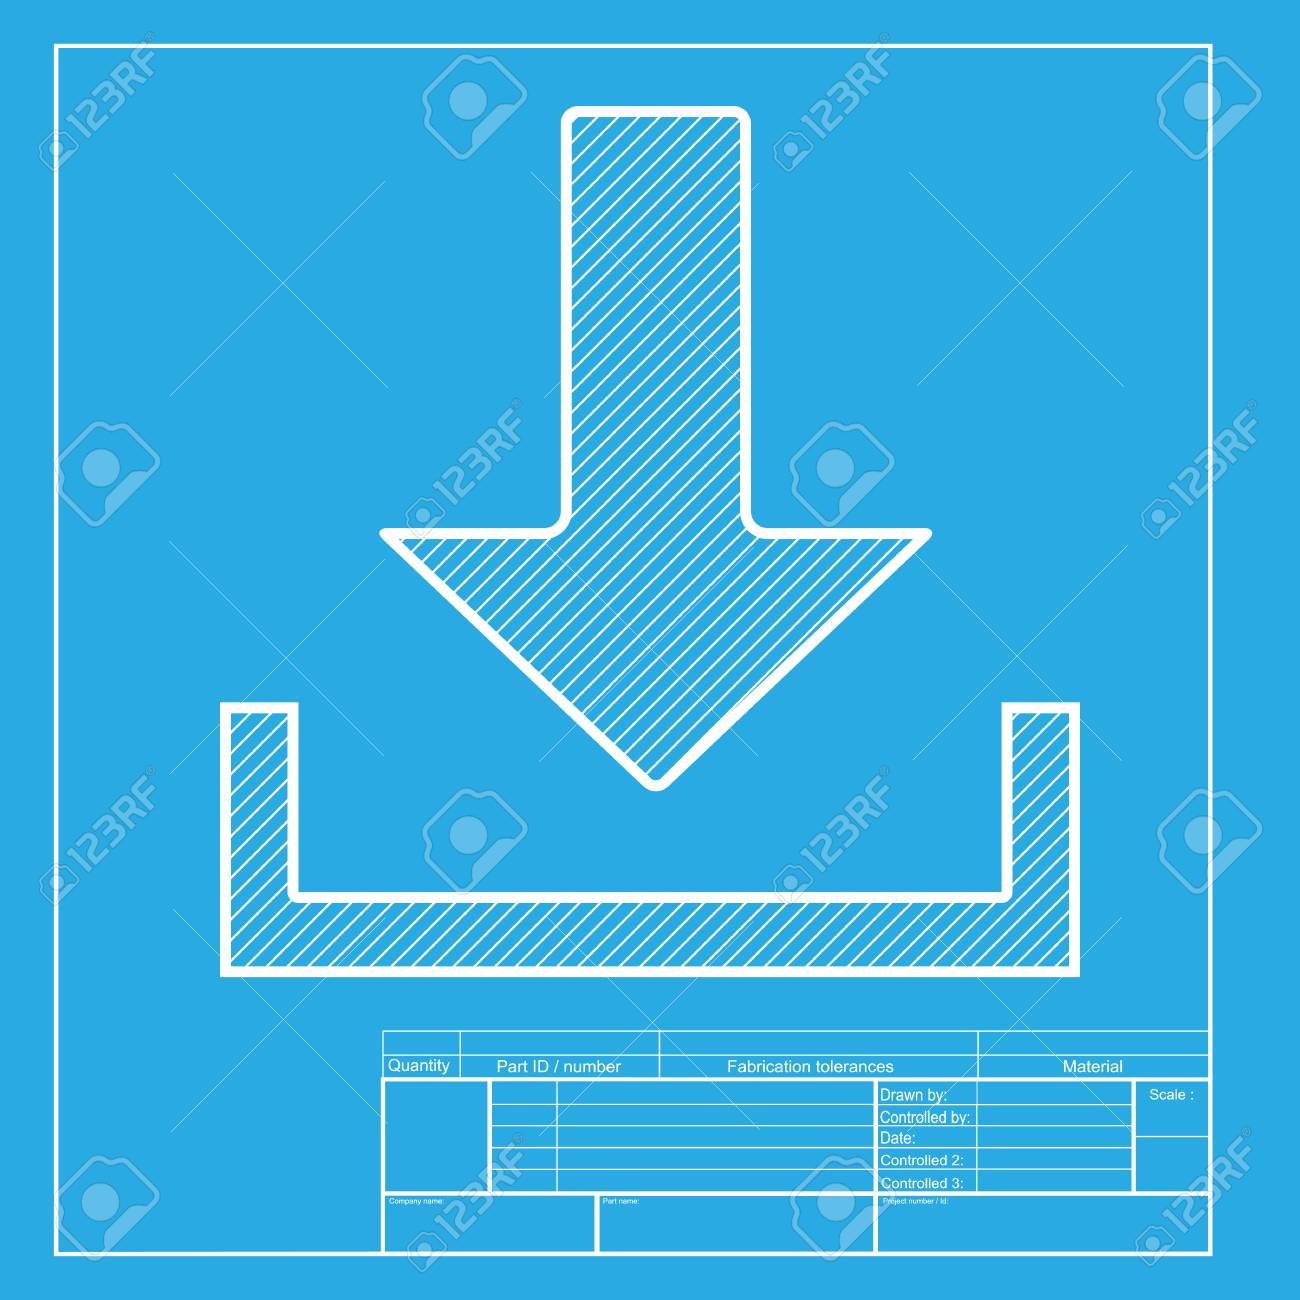 Download sign illustration white section of icon on blueprint download sign illustration white section of icon on blueprint template stock vector 58751079 malvernweather Image collections